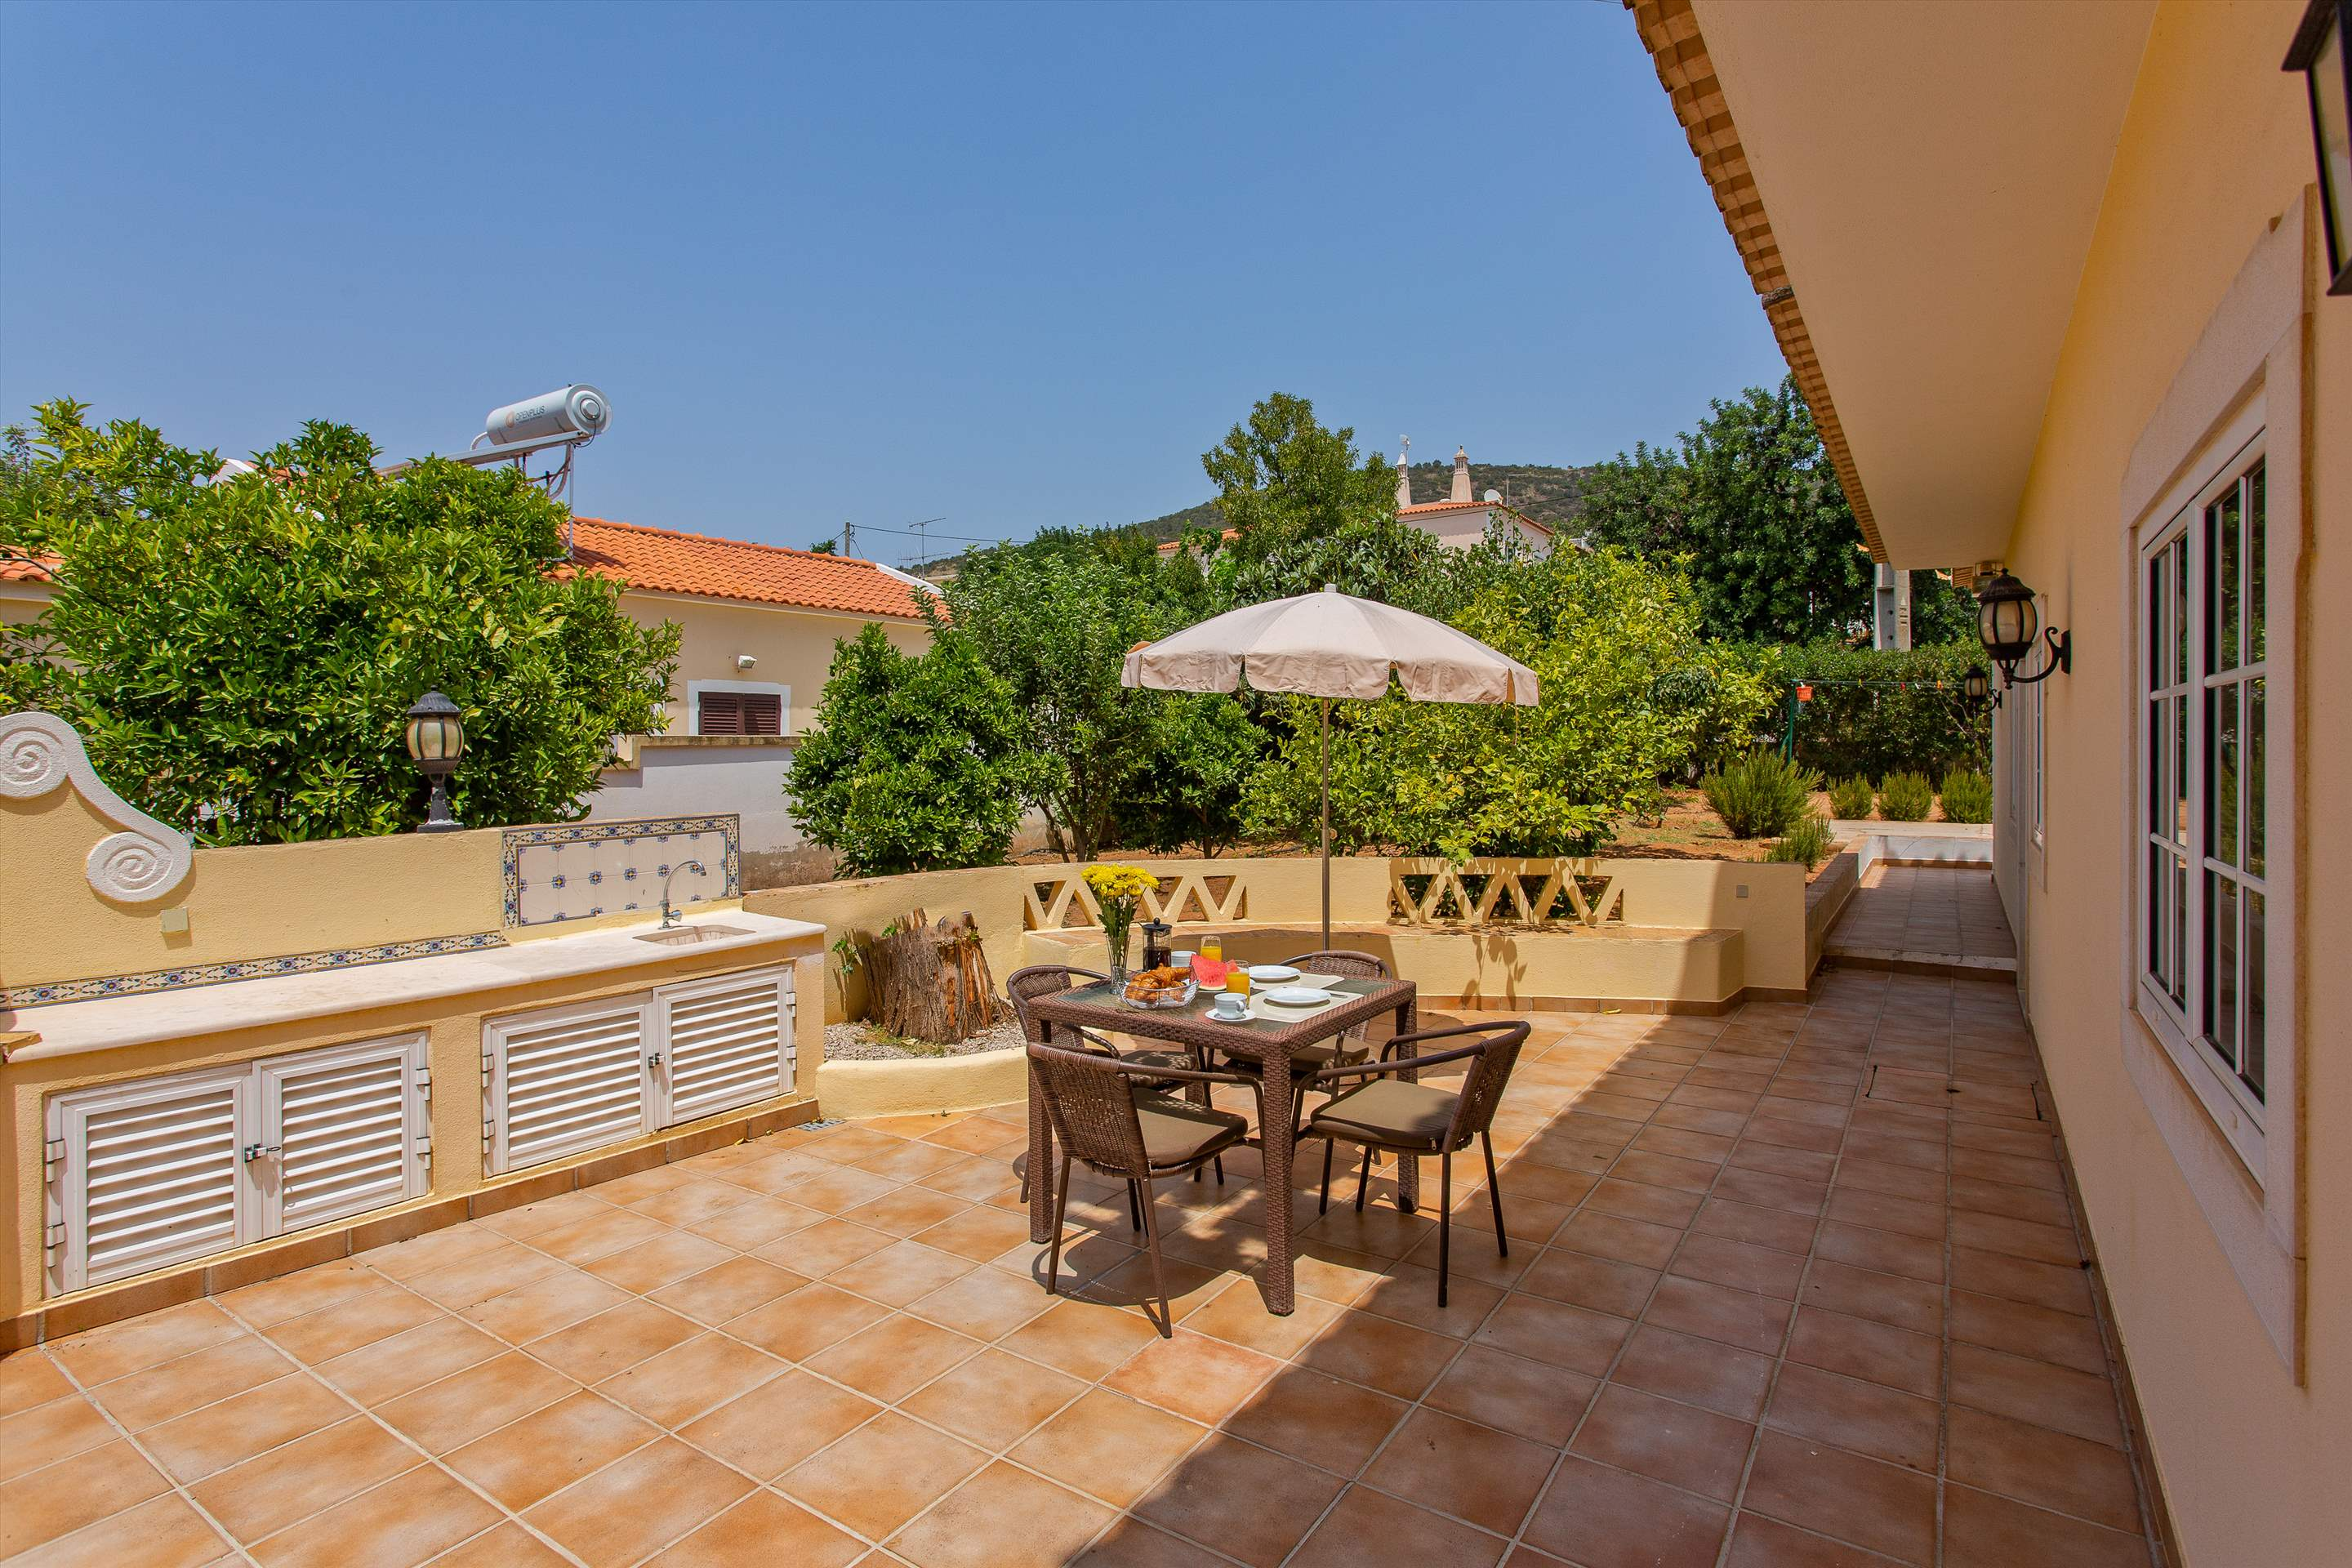 Quinta do Bruno, Eight Bedroom Rate including annexes, 8 bedroom villa in Vilamoura Area, Algarve Photo #19